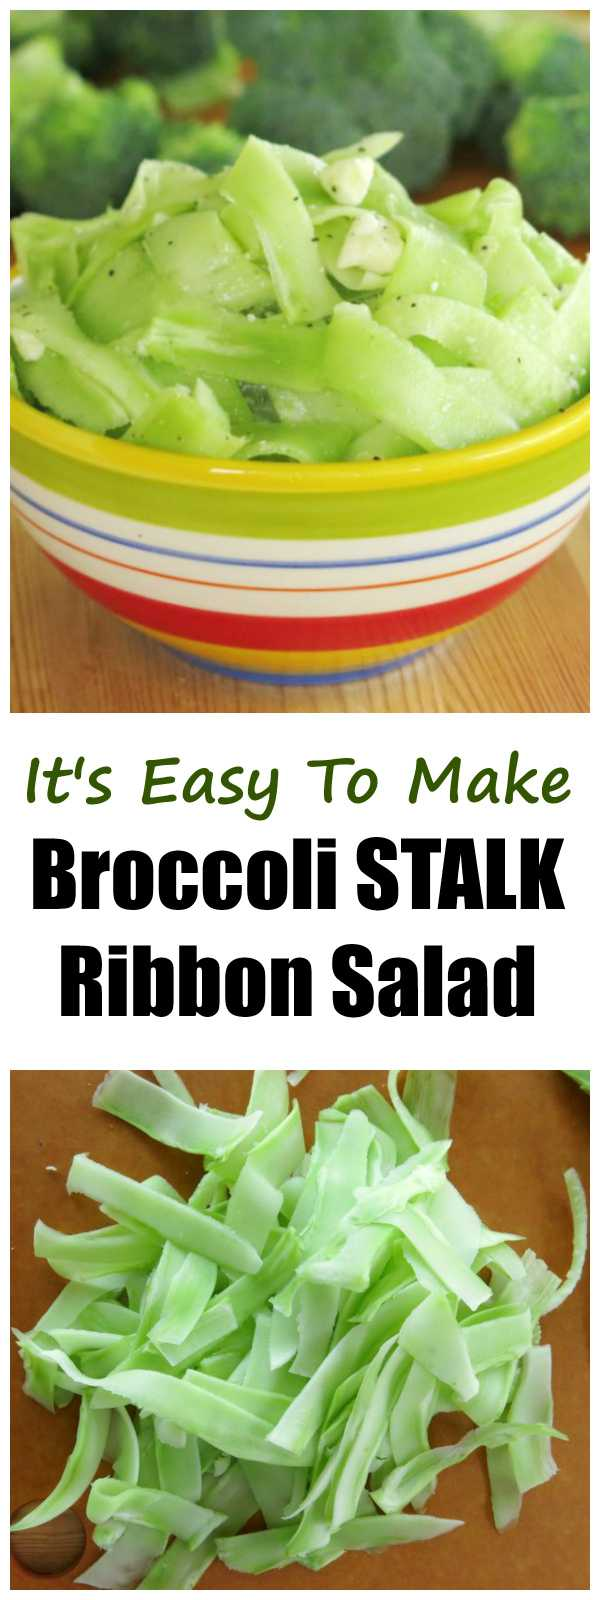 Shaved Broccoli Stalk Ribbon Salad with Feta Cheese - it's low-carb, gluten-free, easy to make and delish!